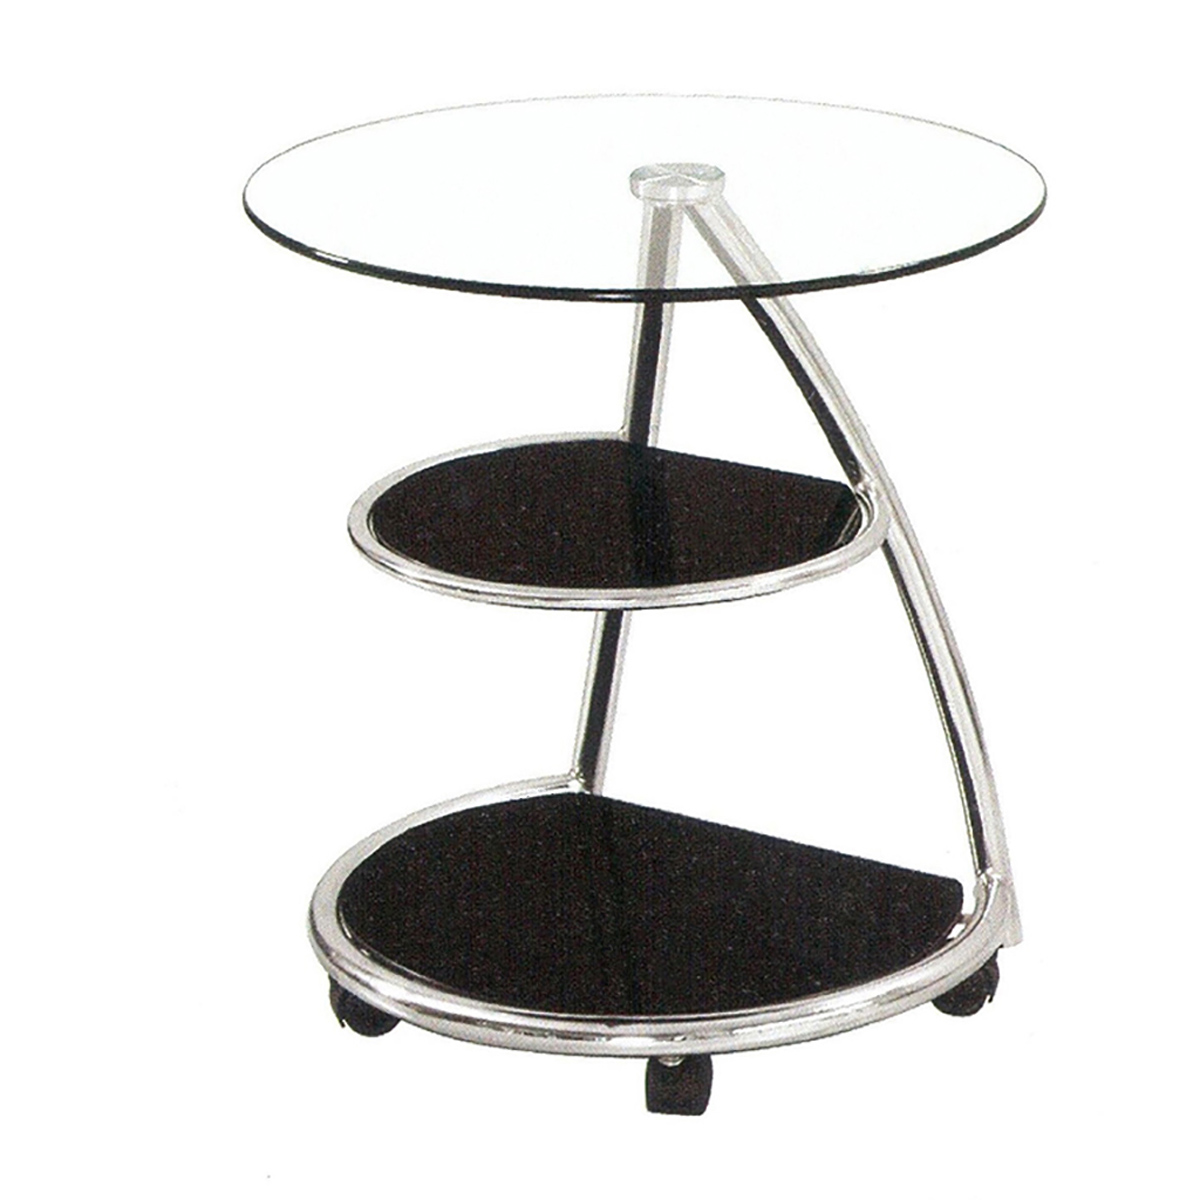 angel modern end table round black glass with storage shelves accent quick view living room tables dining chairs pedestal plant stand indoor red decor cherry bedroom furniture